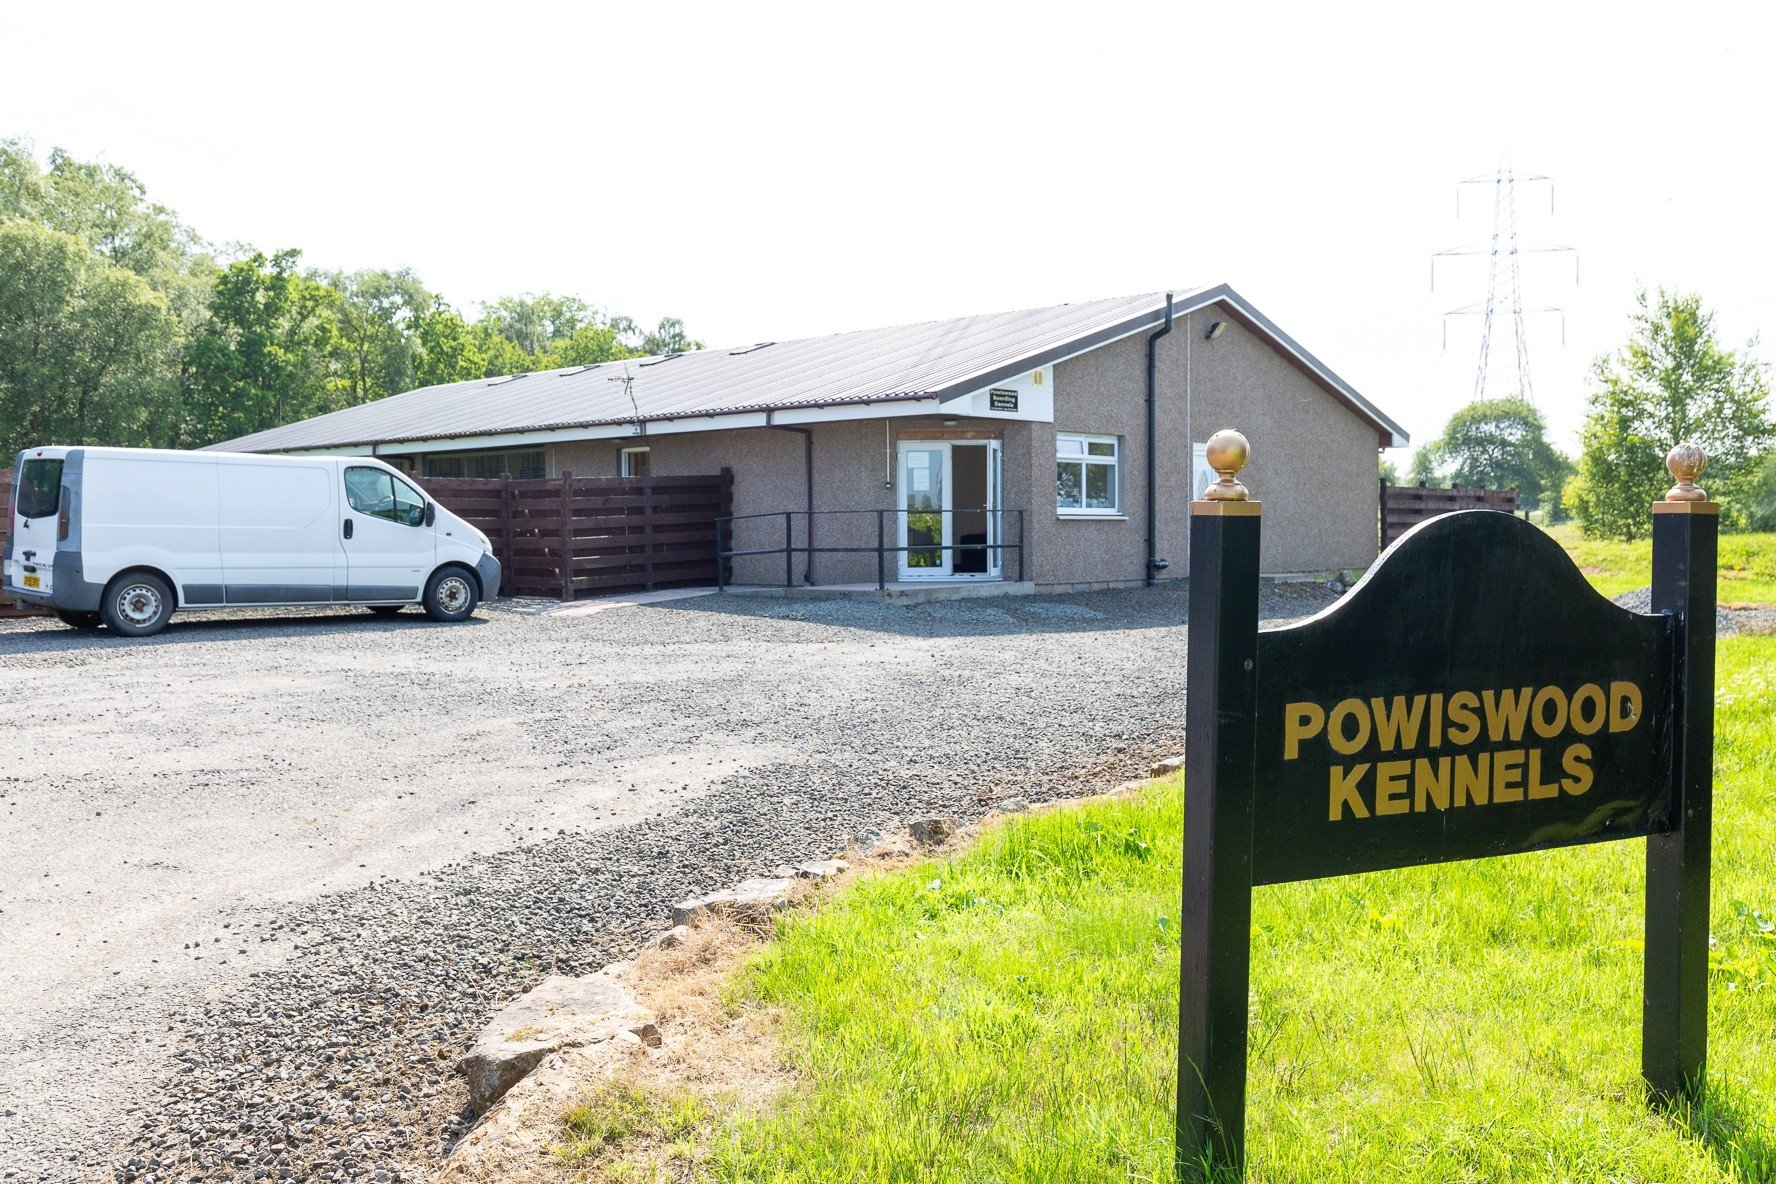 Profitable Boarding Kennels with Superb Family Home in 2.5 acres, Central Scotland - Image 11